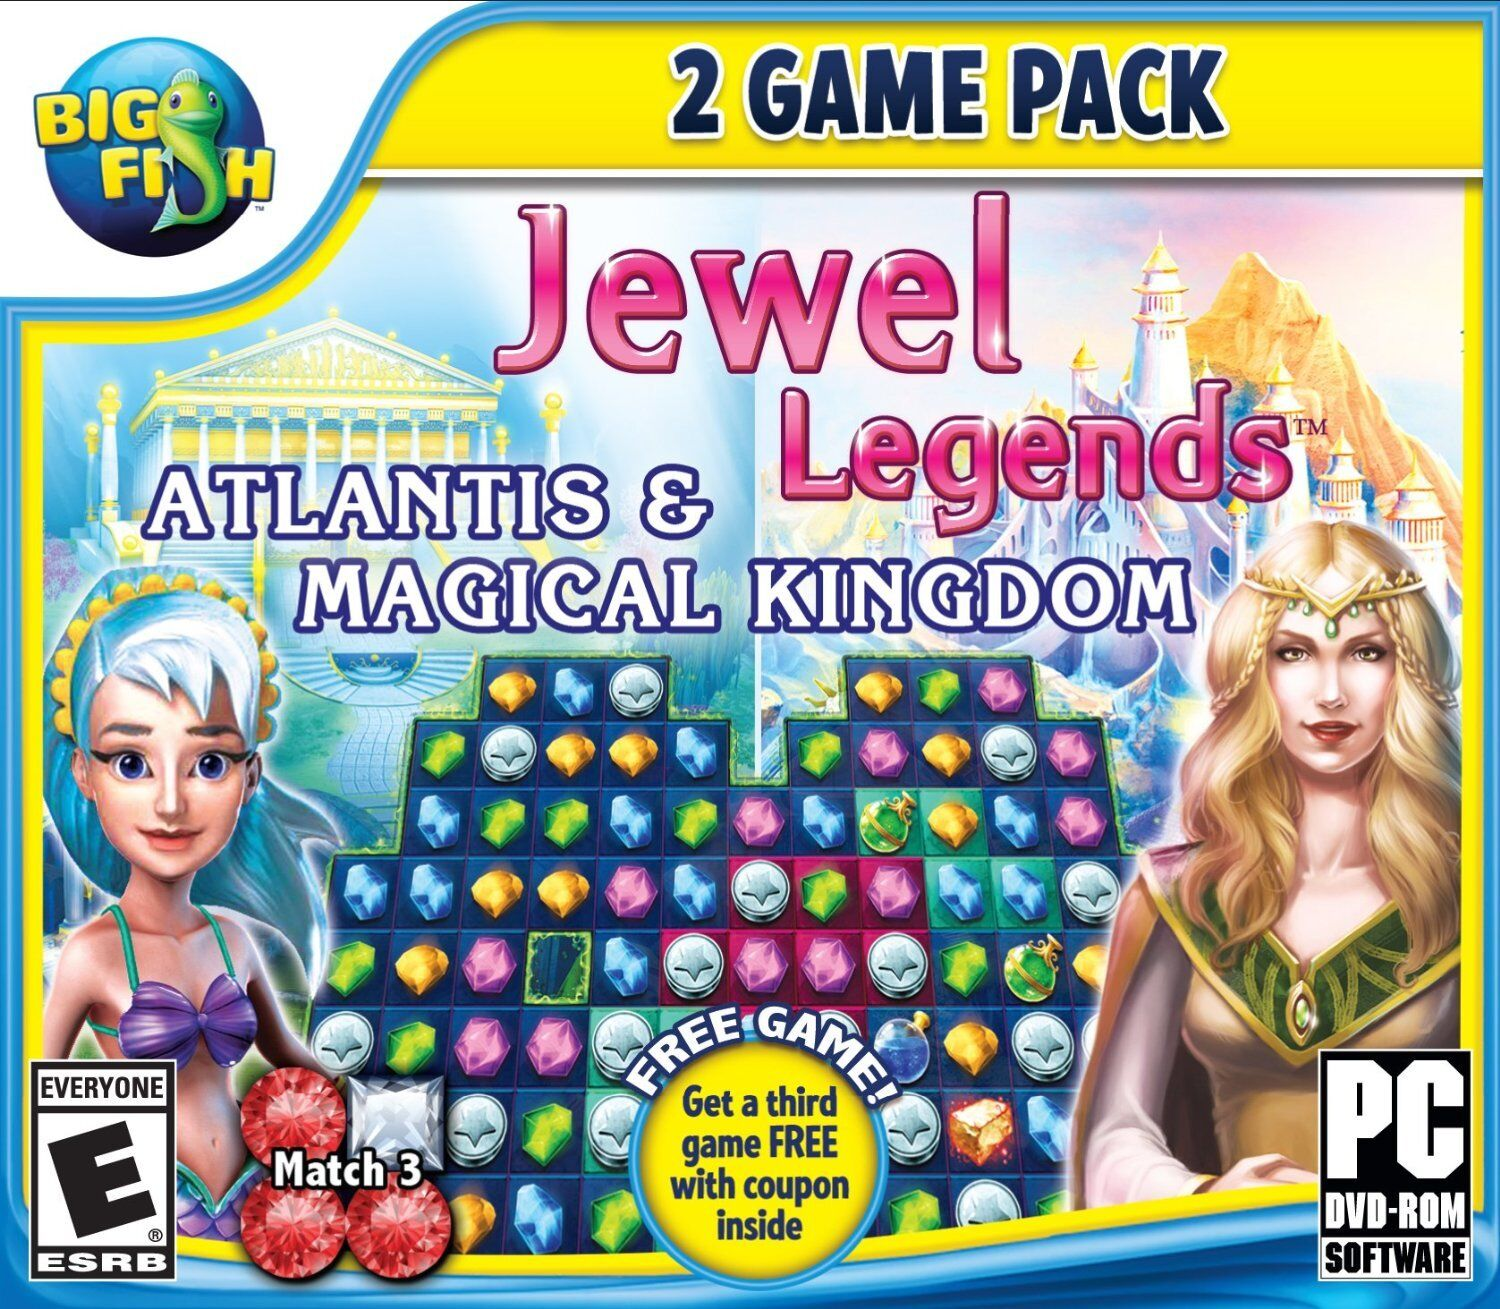 Computer Games - Jewel Legends 2 Game Pack PC Games Windows 10 8 7 XP Computer puzzles match 3